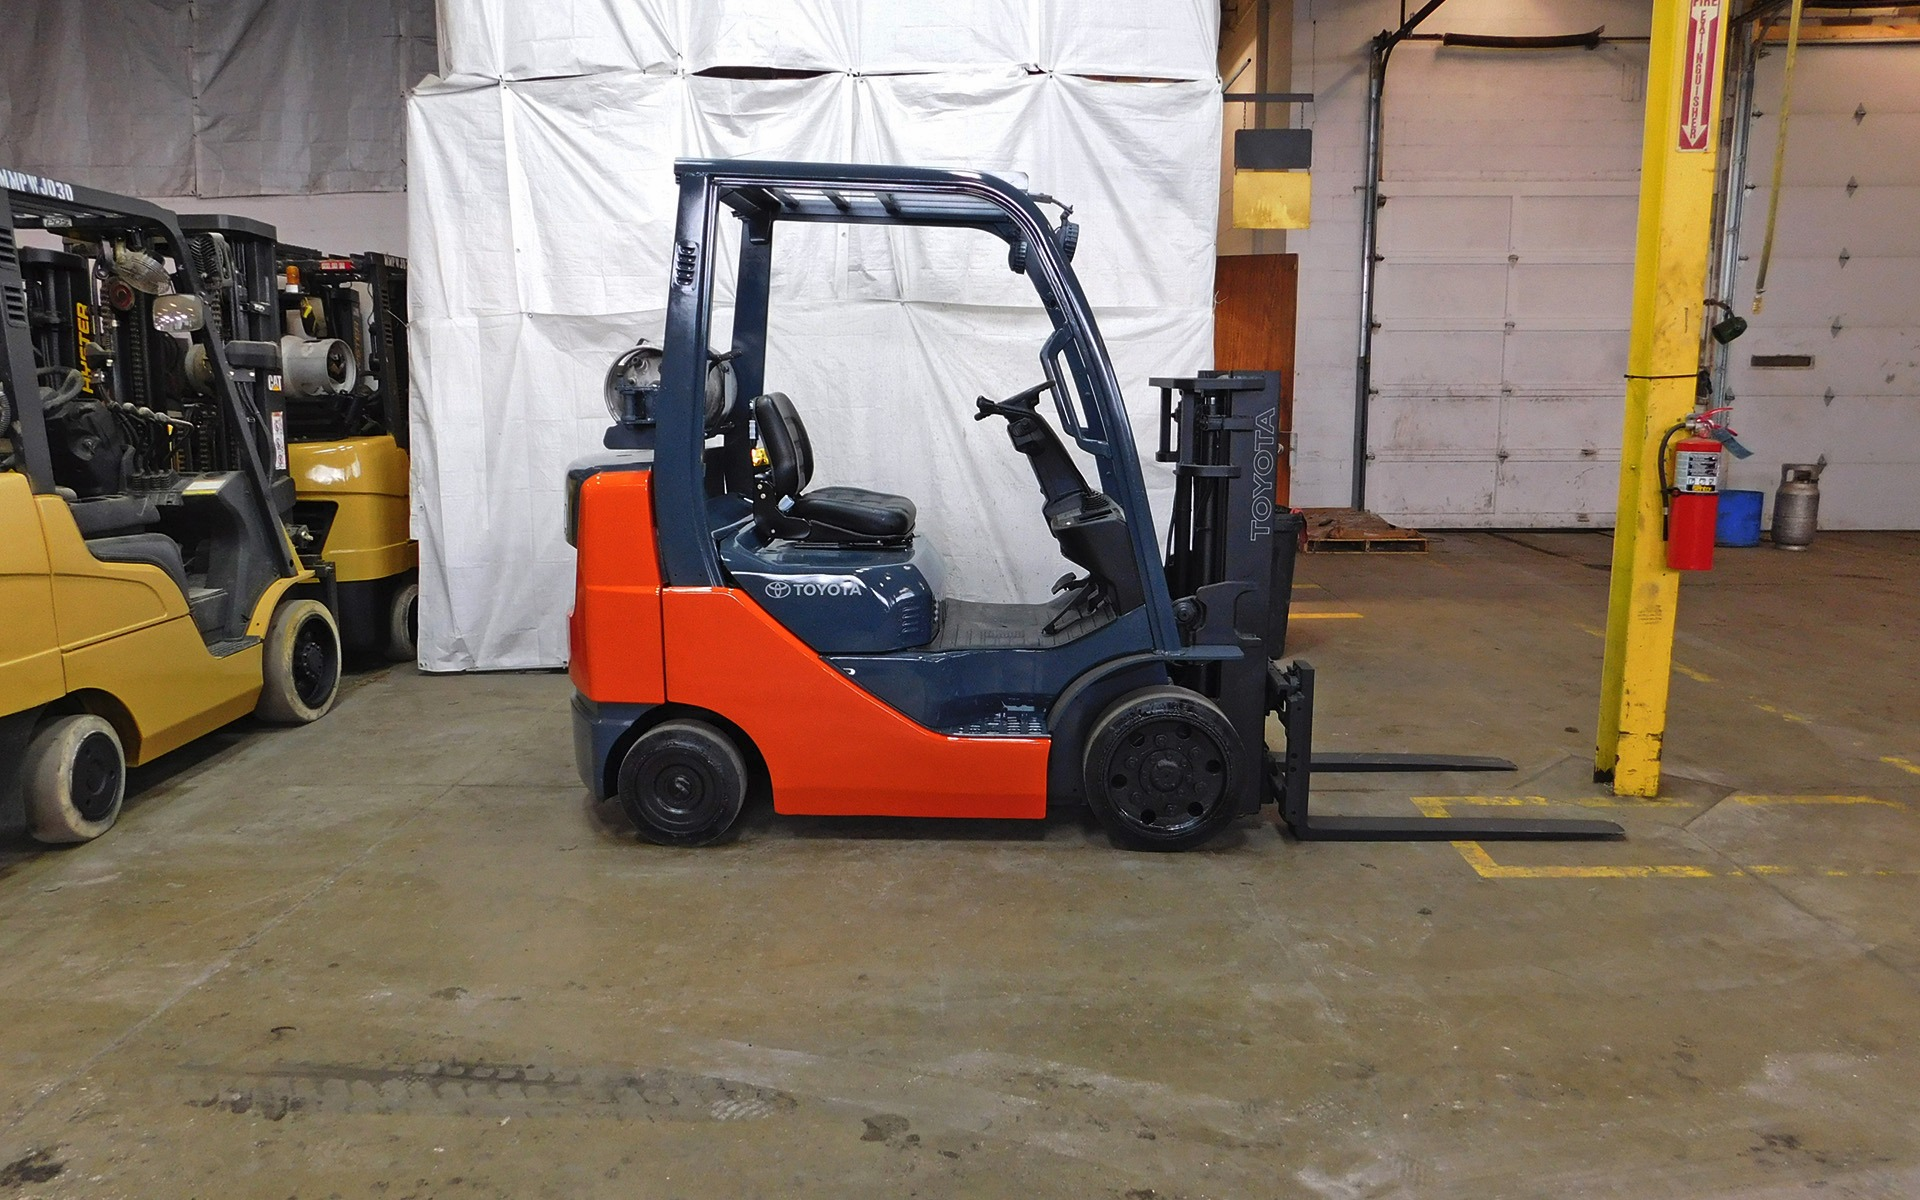 2016 Toyota forklift photo - 2